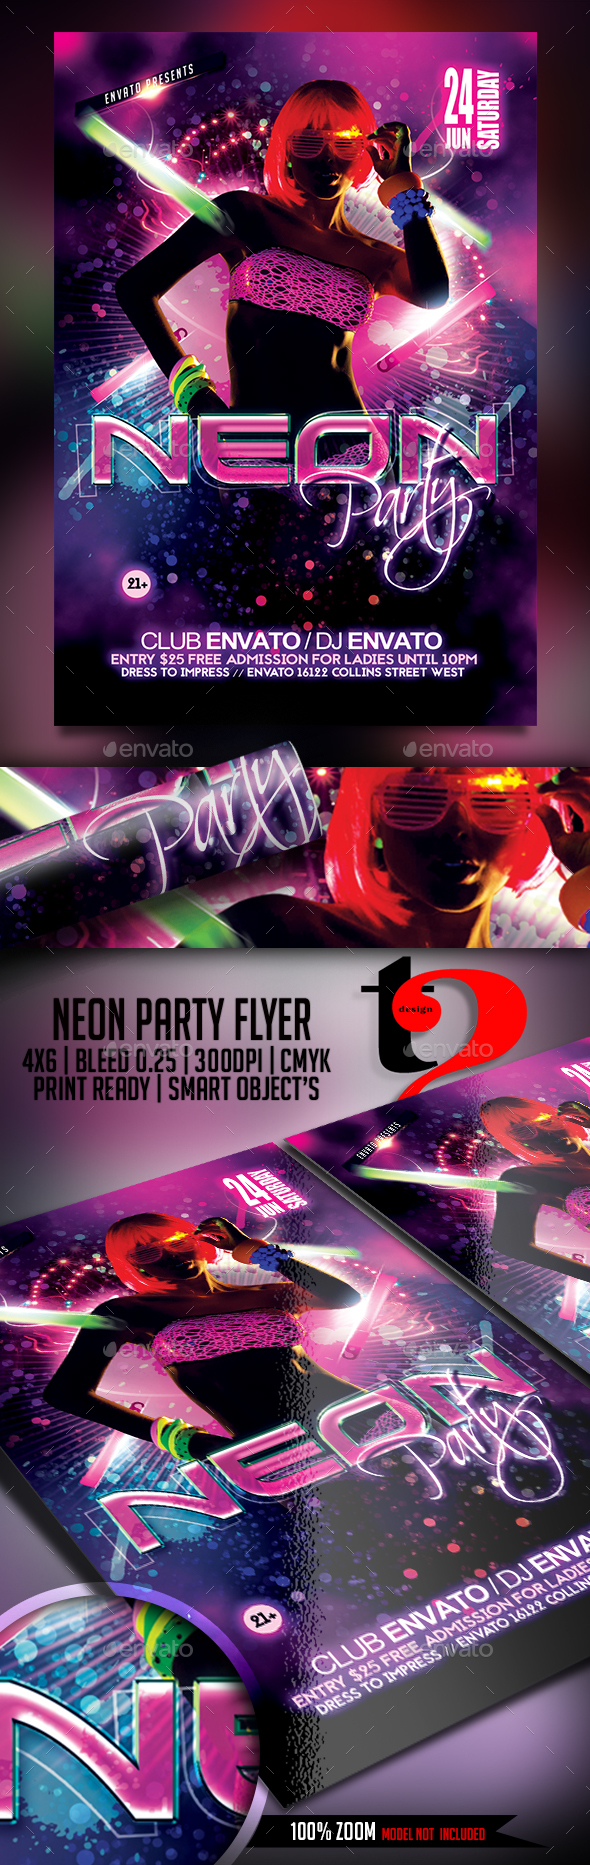 Neon Party Flyer - Template - Clubs & Parties Events